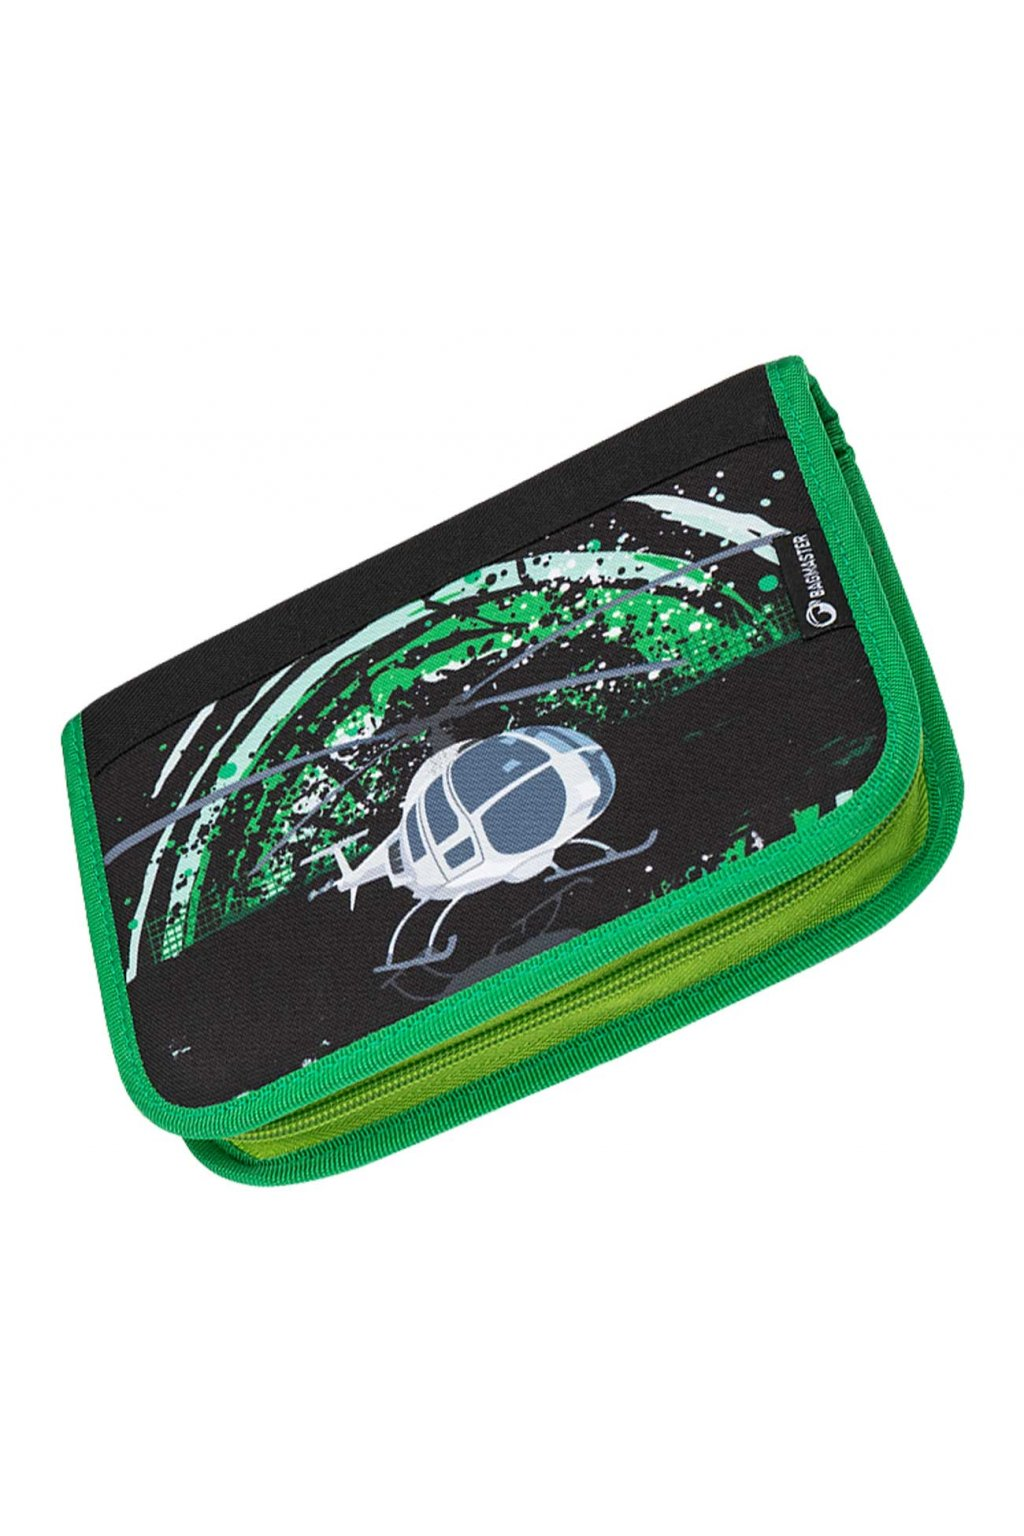 CASE ALFA 9D BLACK GREEN GRAY 1 kopie